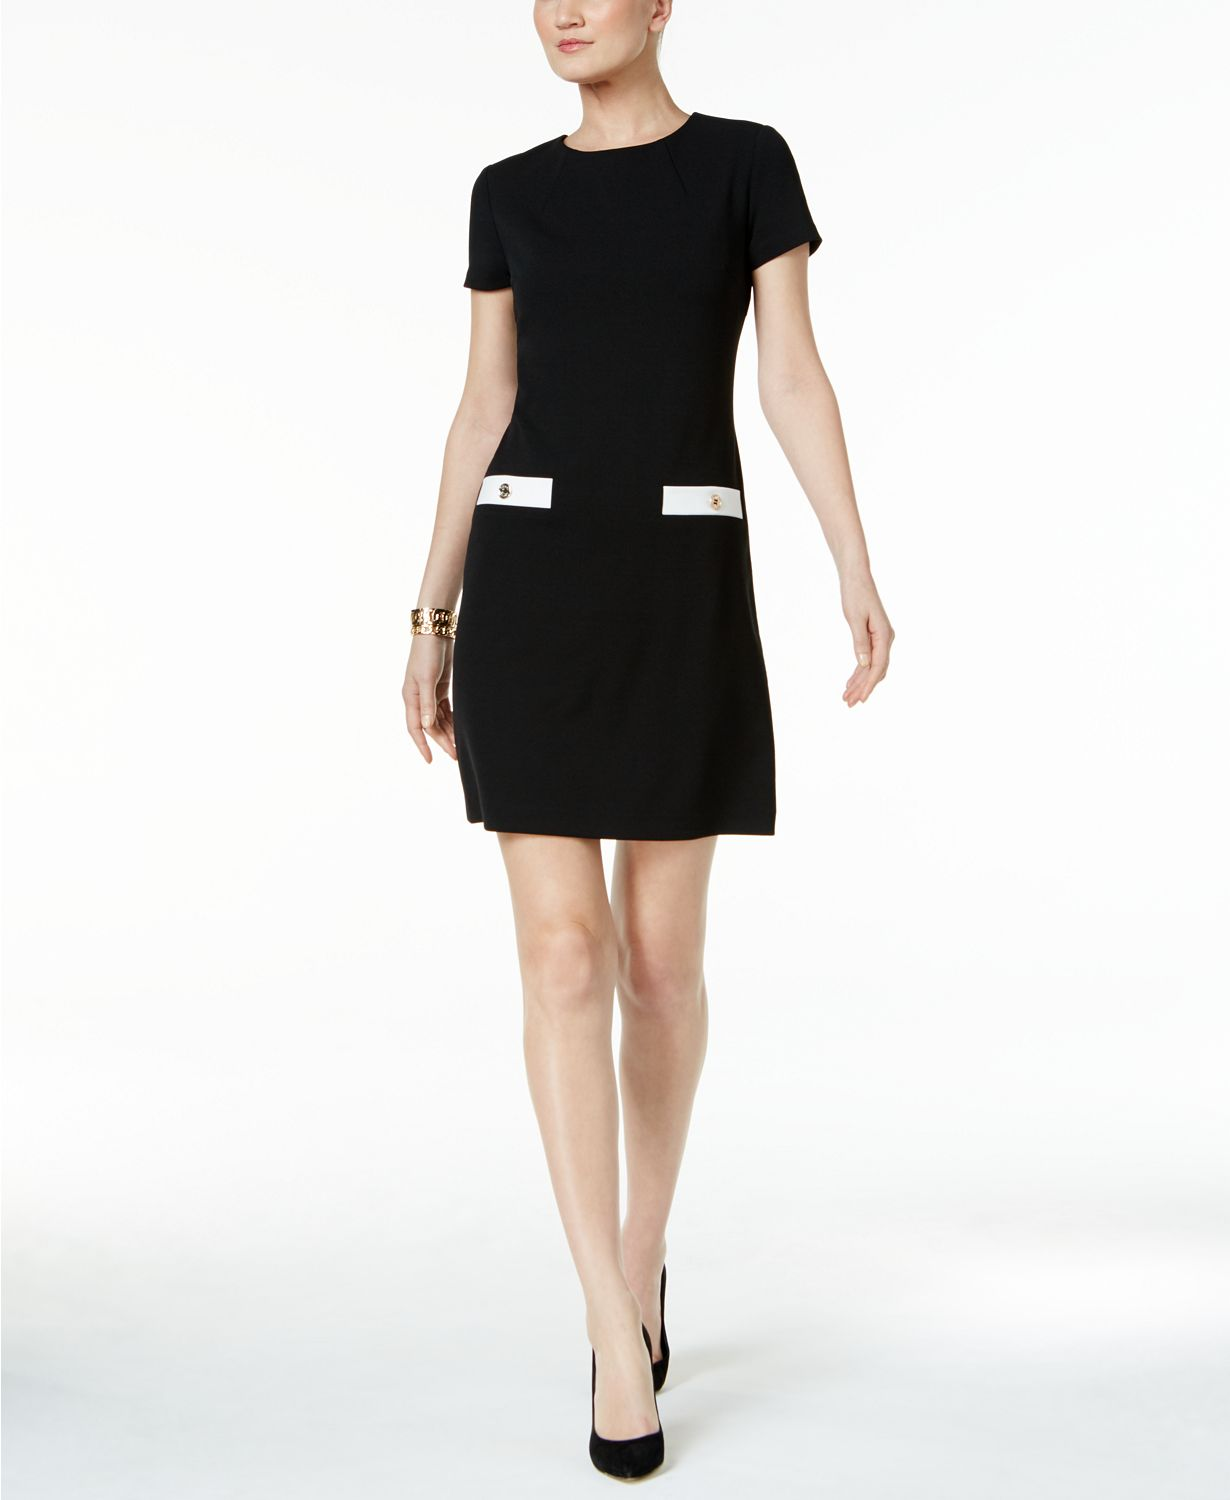 Tommy Hilfiger black shift dress